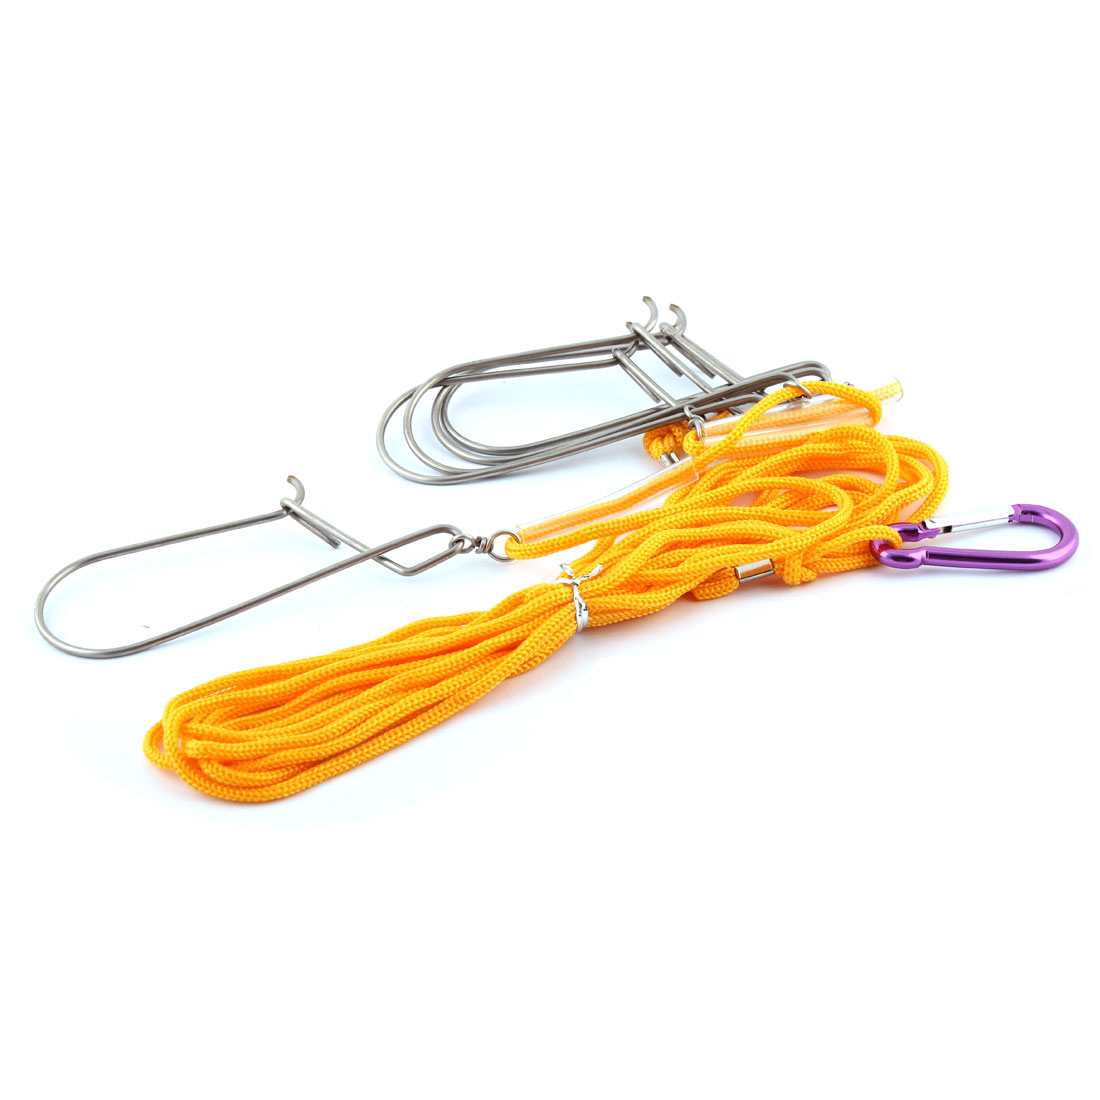 how to use a rope fish stringer